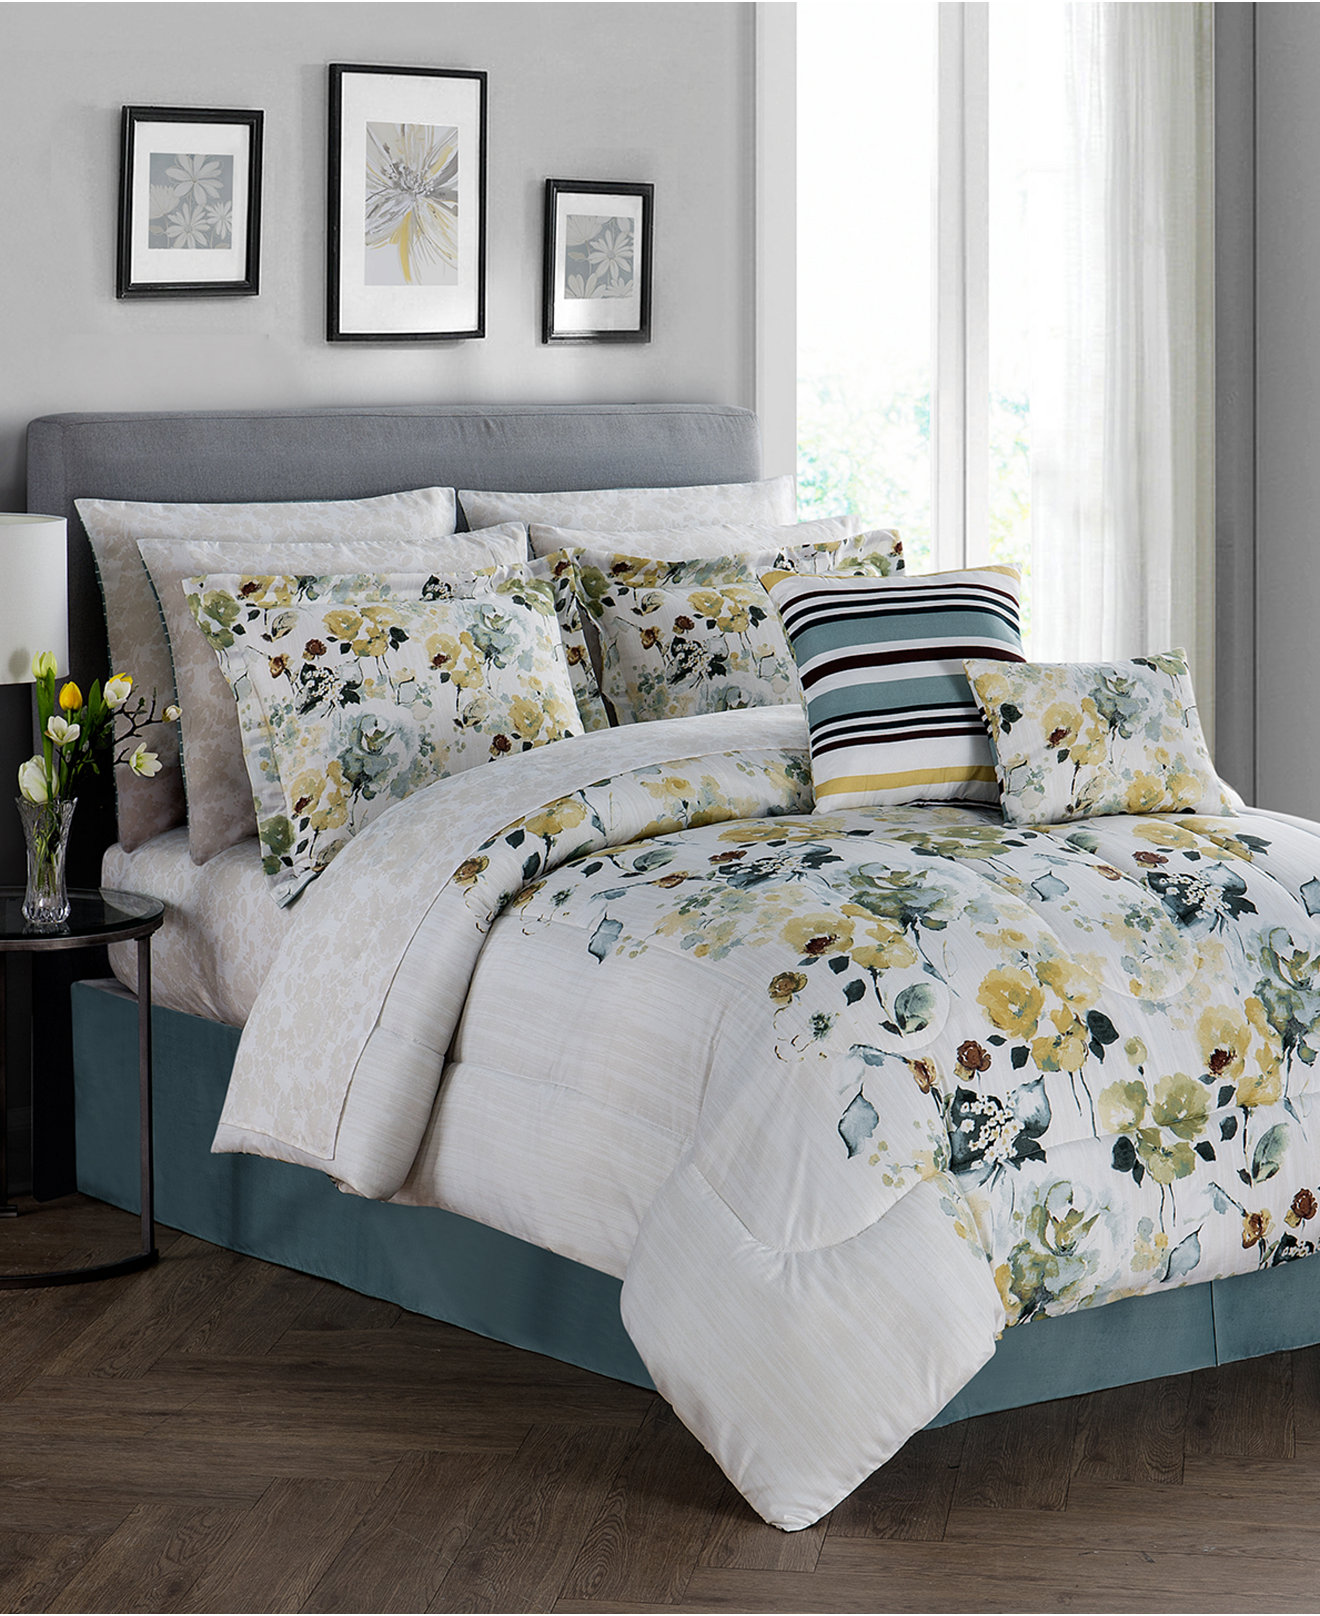 Bedding sets for women - Alexis Reversible 12 Pc Comforter Sets